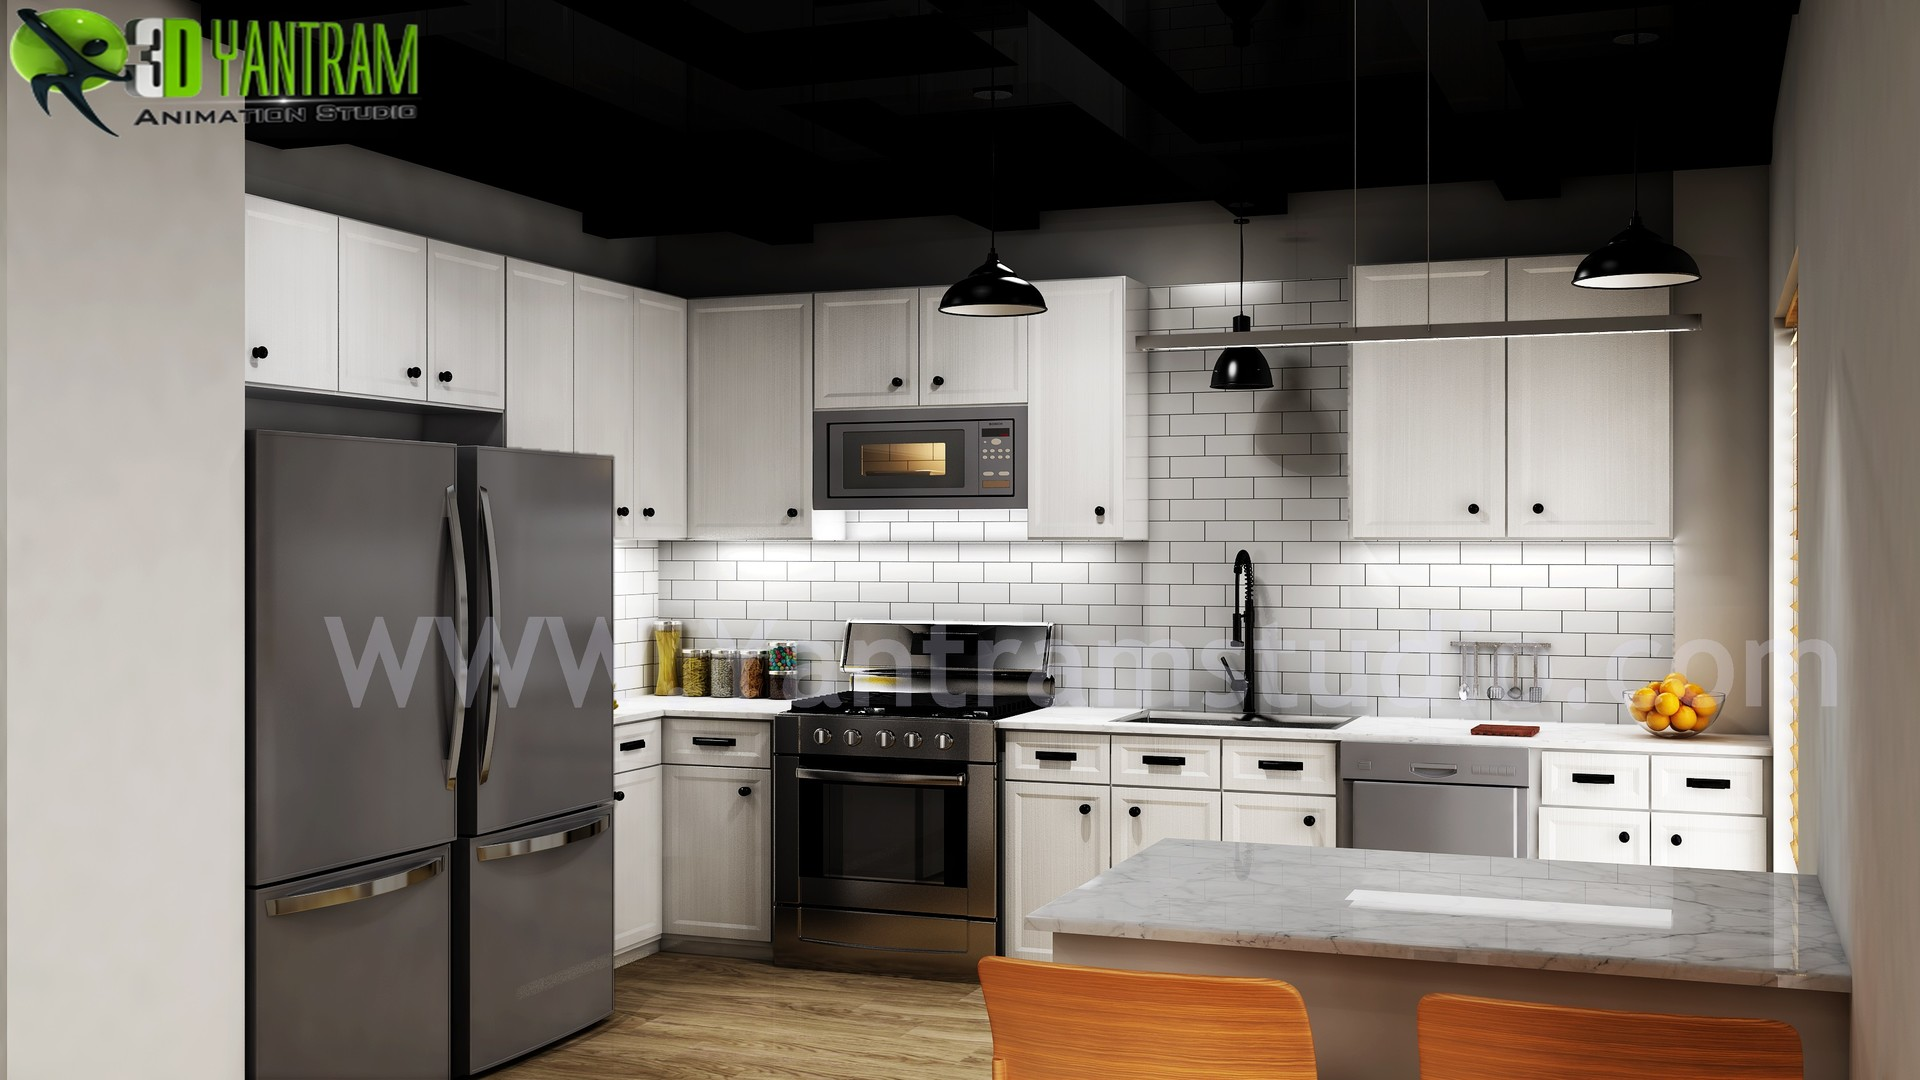 ArtStation - Modern Small Kitchen Design Ideas by Yantram 3d ...